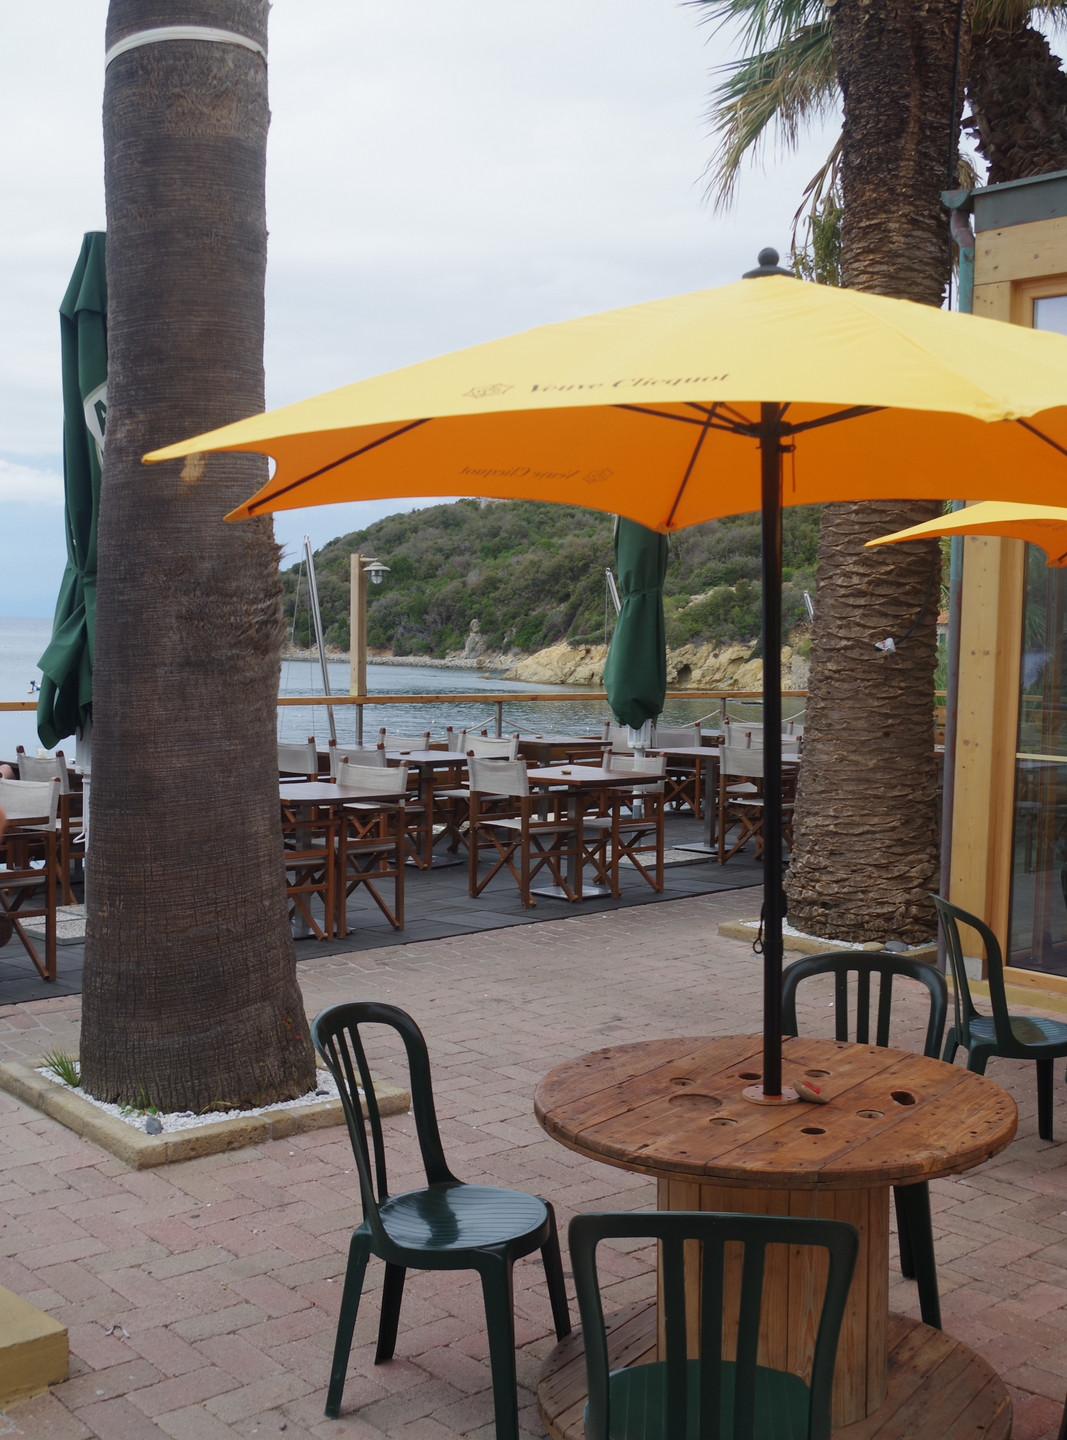 The campground restaurant is a refined seafood delight with amazing sunset views over the bay